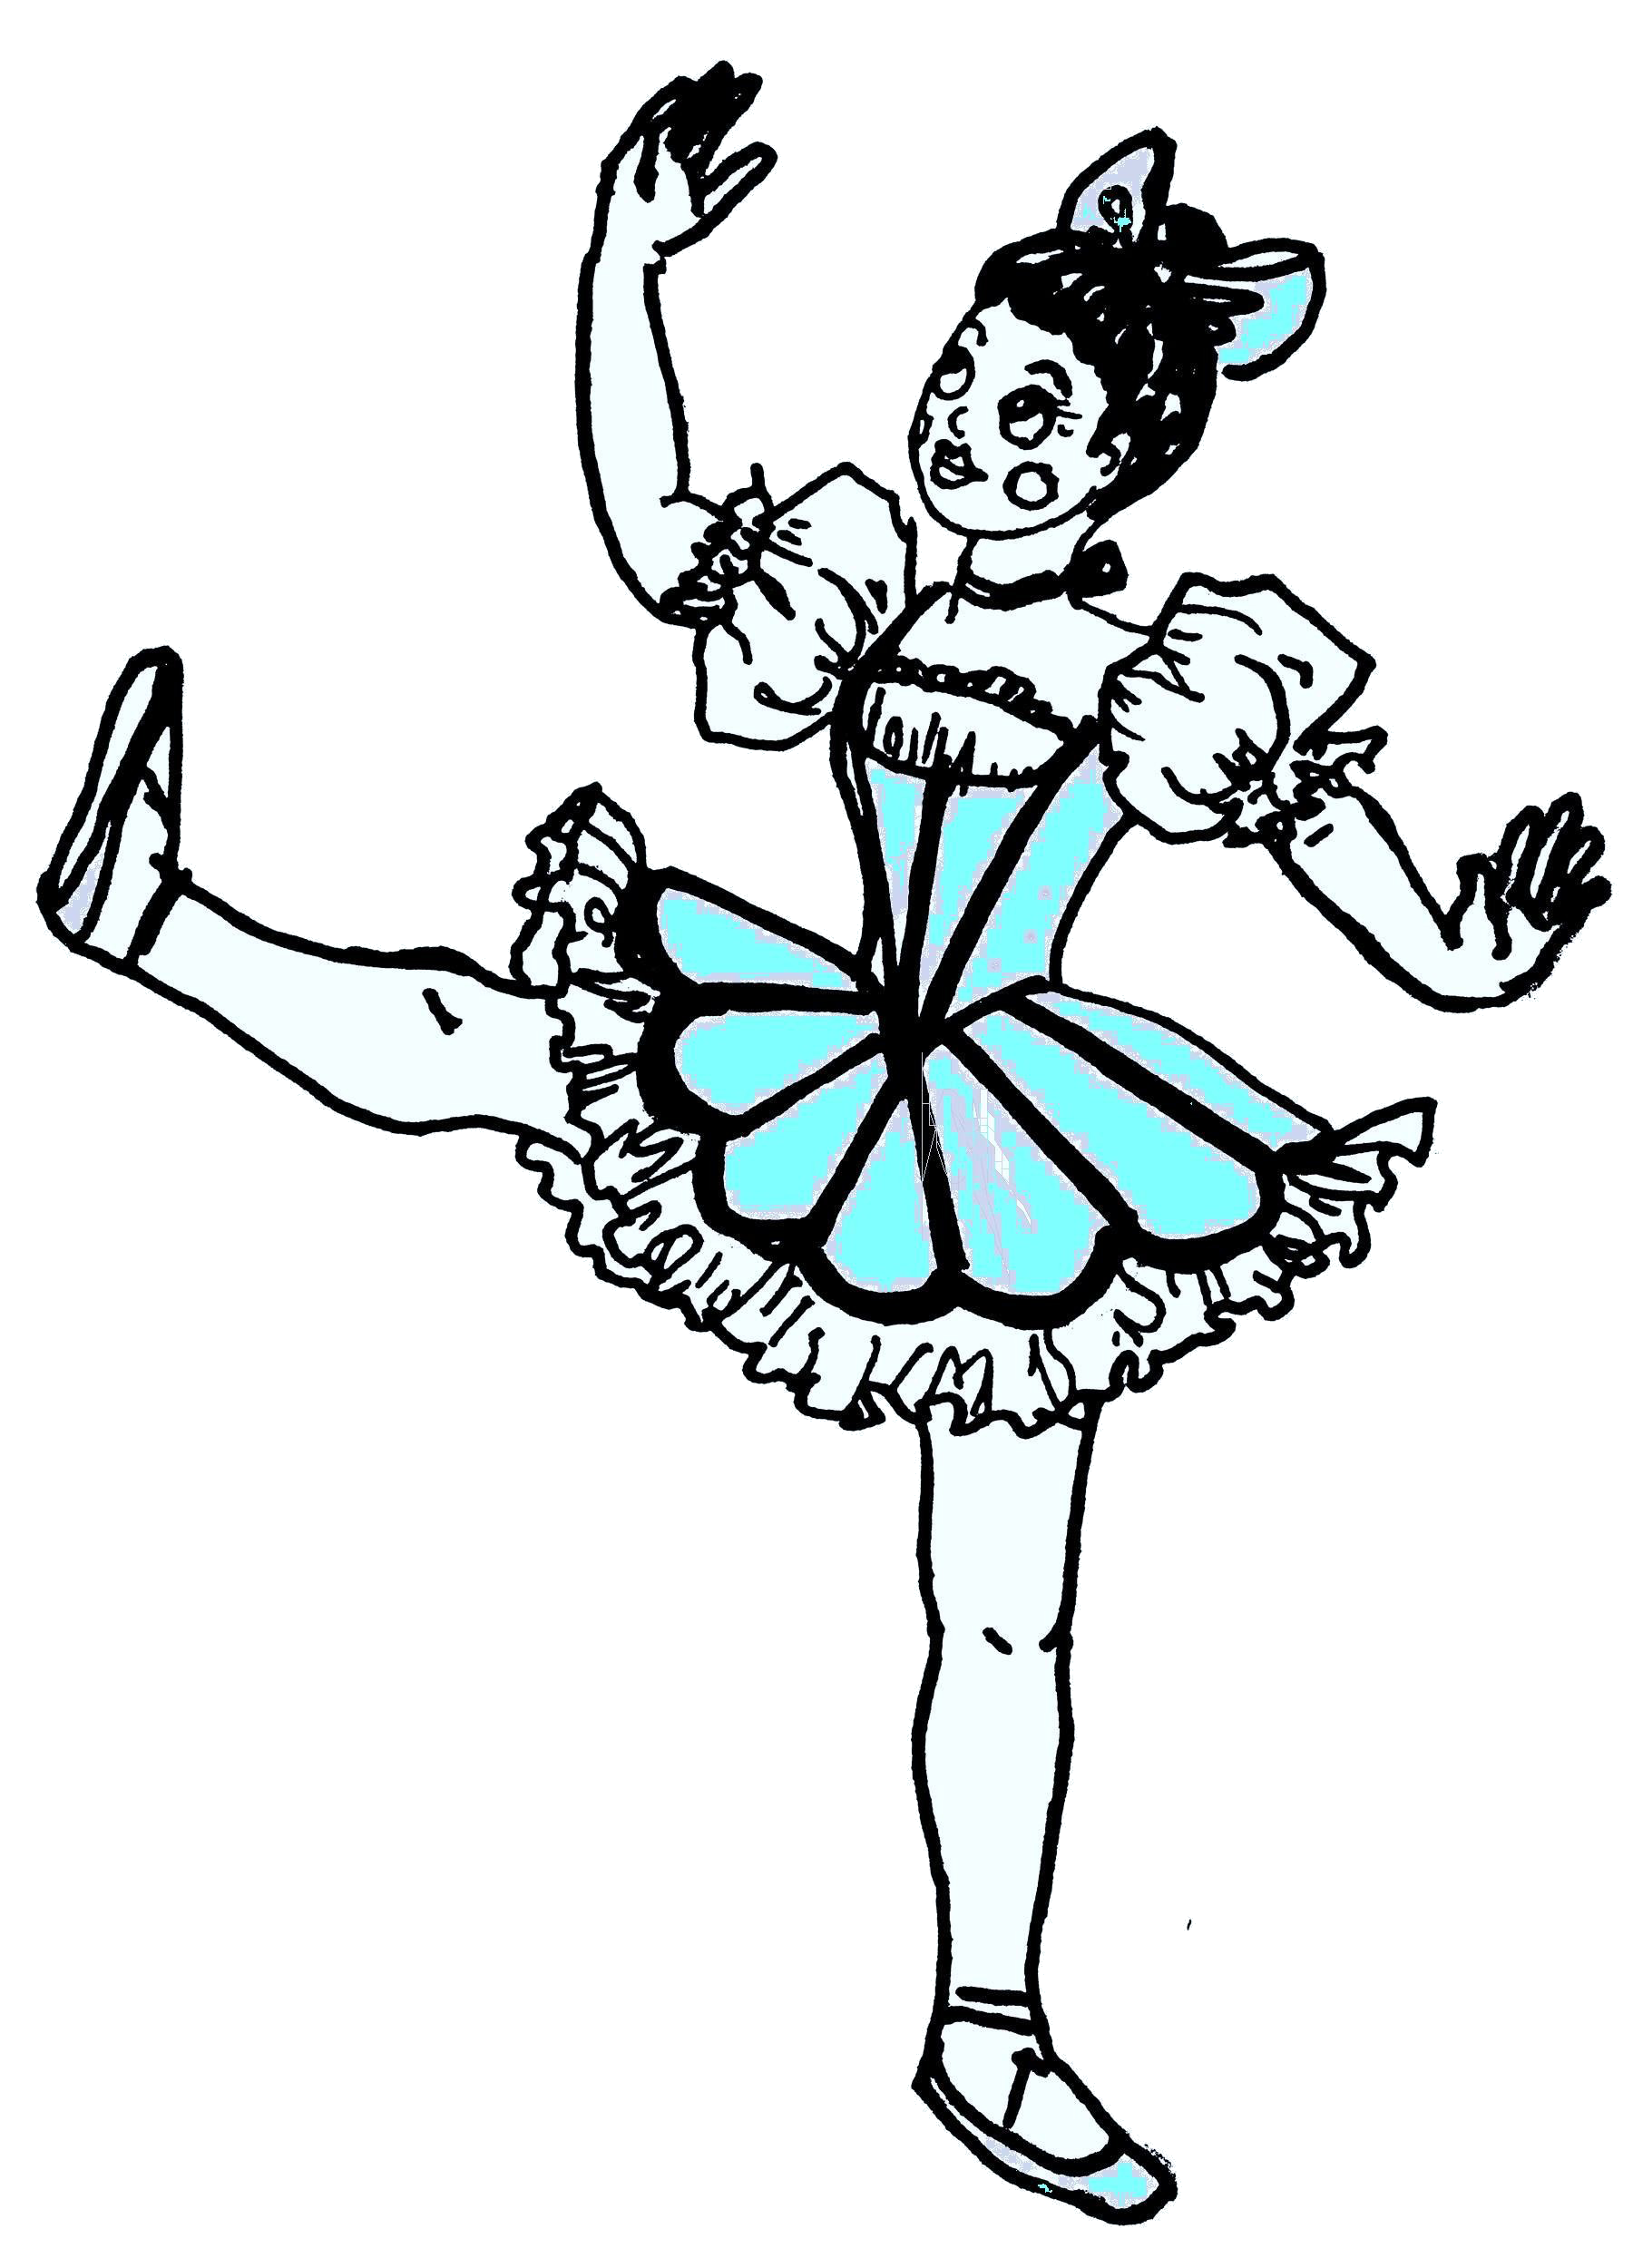 Clip art of Coppelia Doll